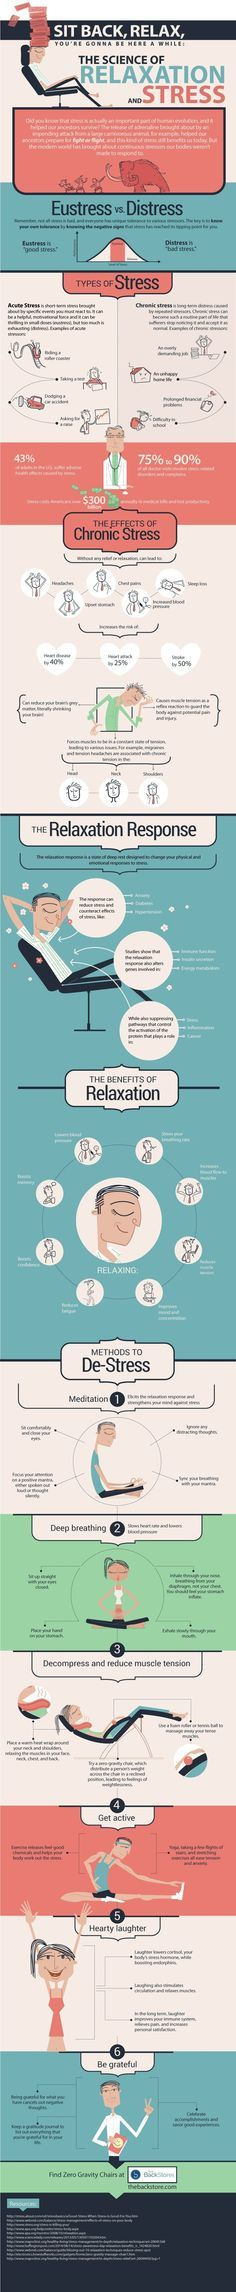 Understanding the importance of finding time to relax in your life to reduce the signs of stress & anxiety